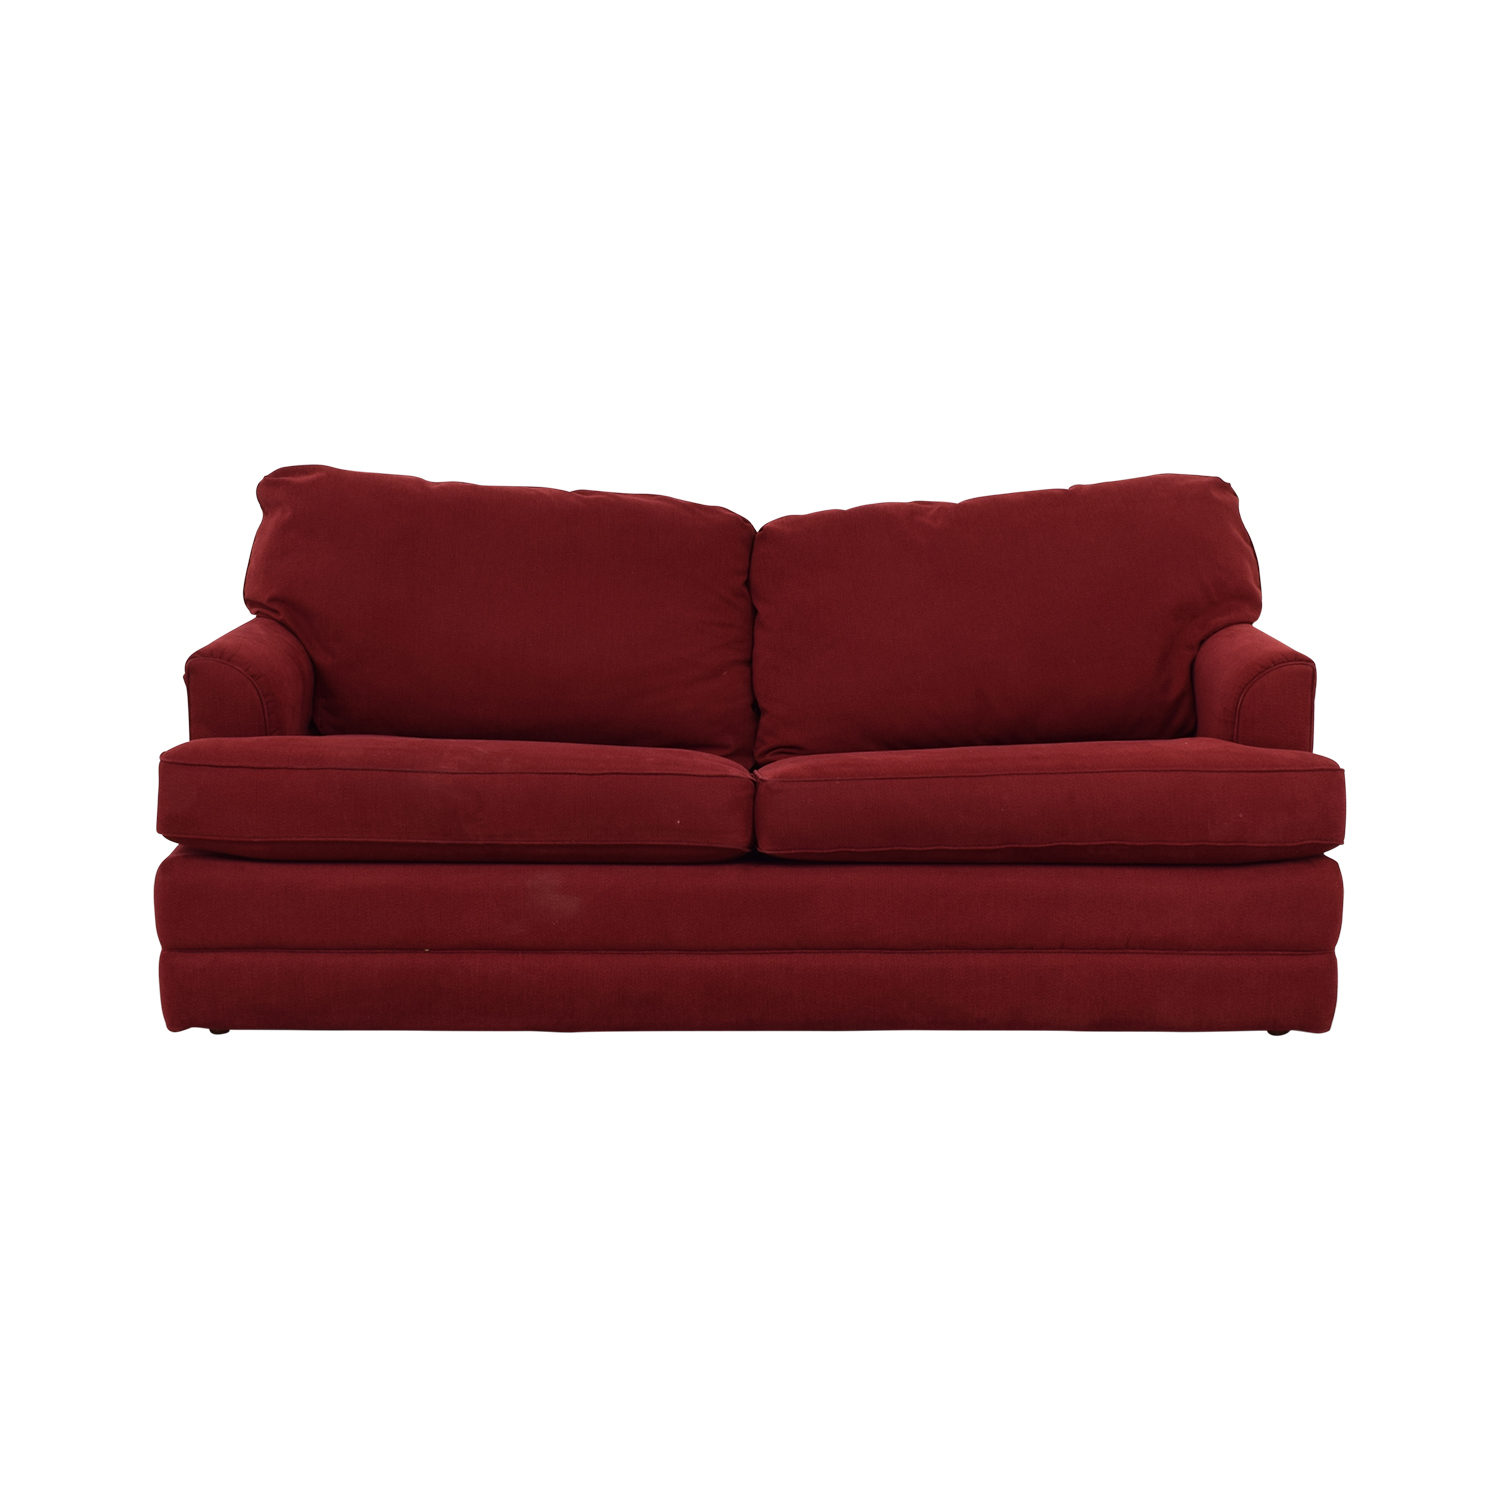 Queen Sofa Bed Ottoman 59 Off Room Board Room Board York Full Sleeper Sofa And